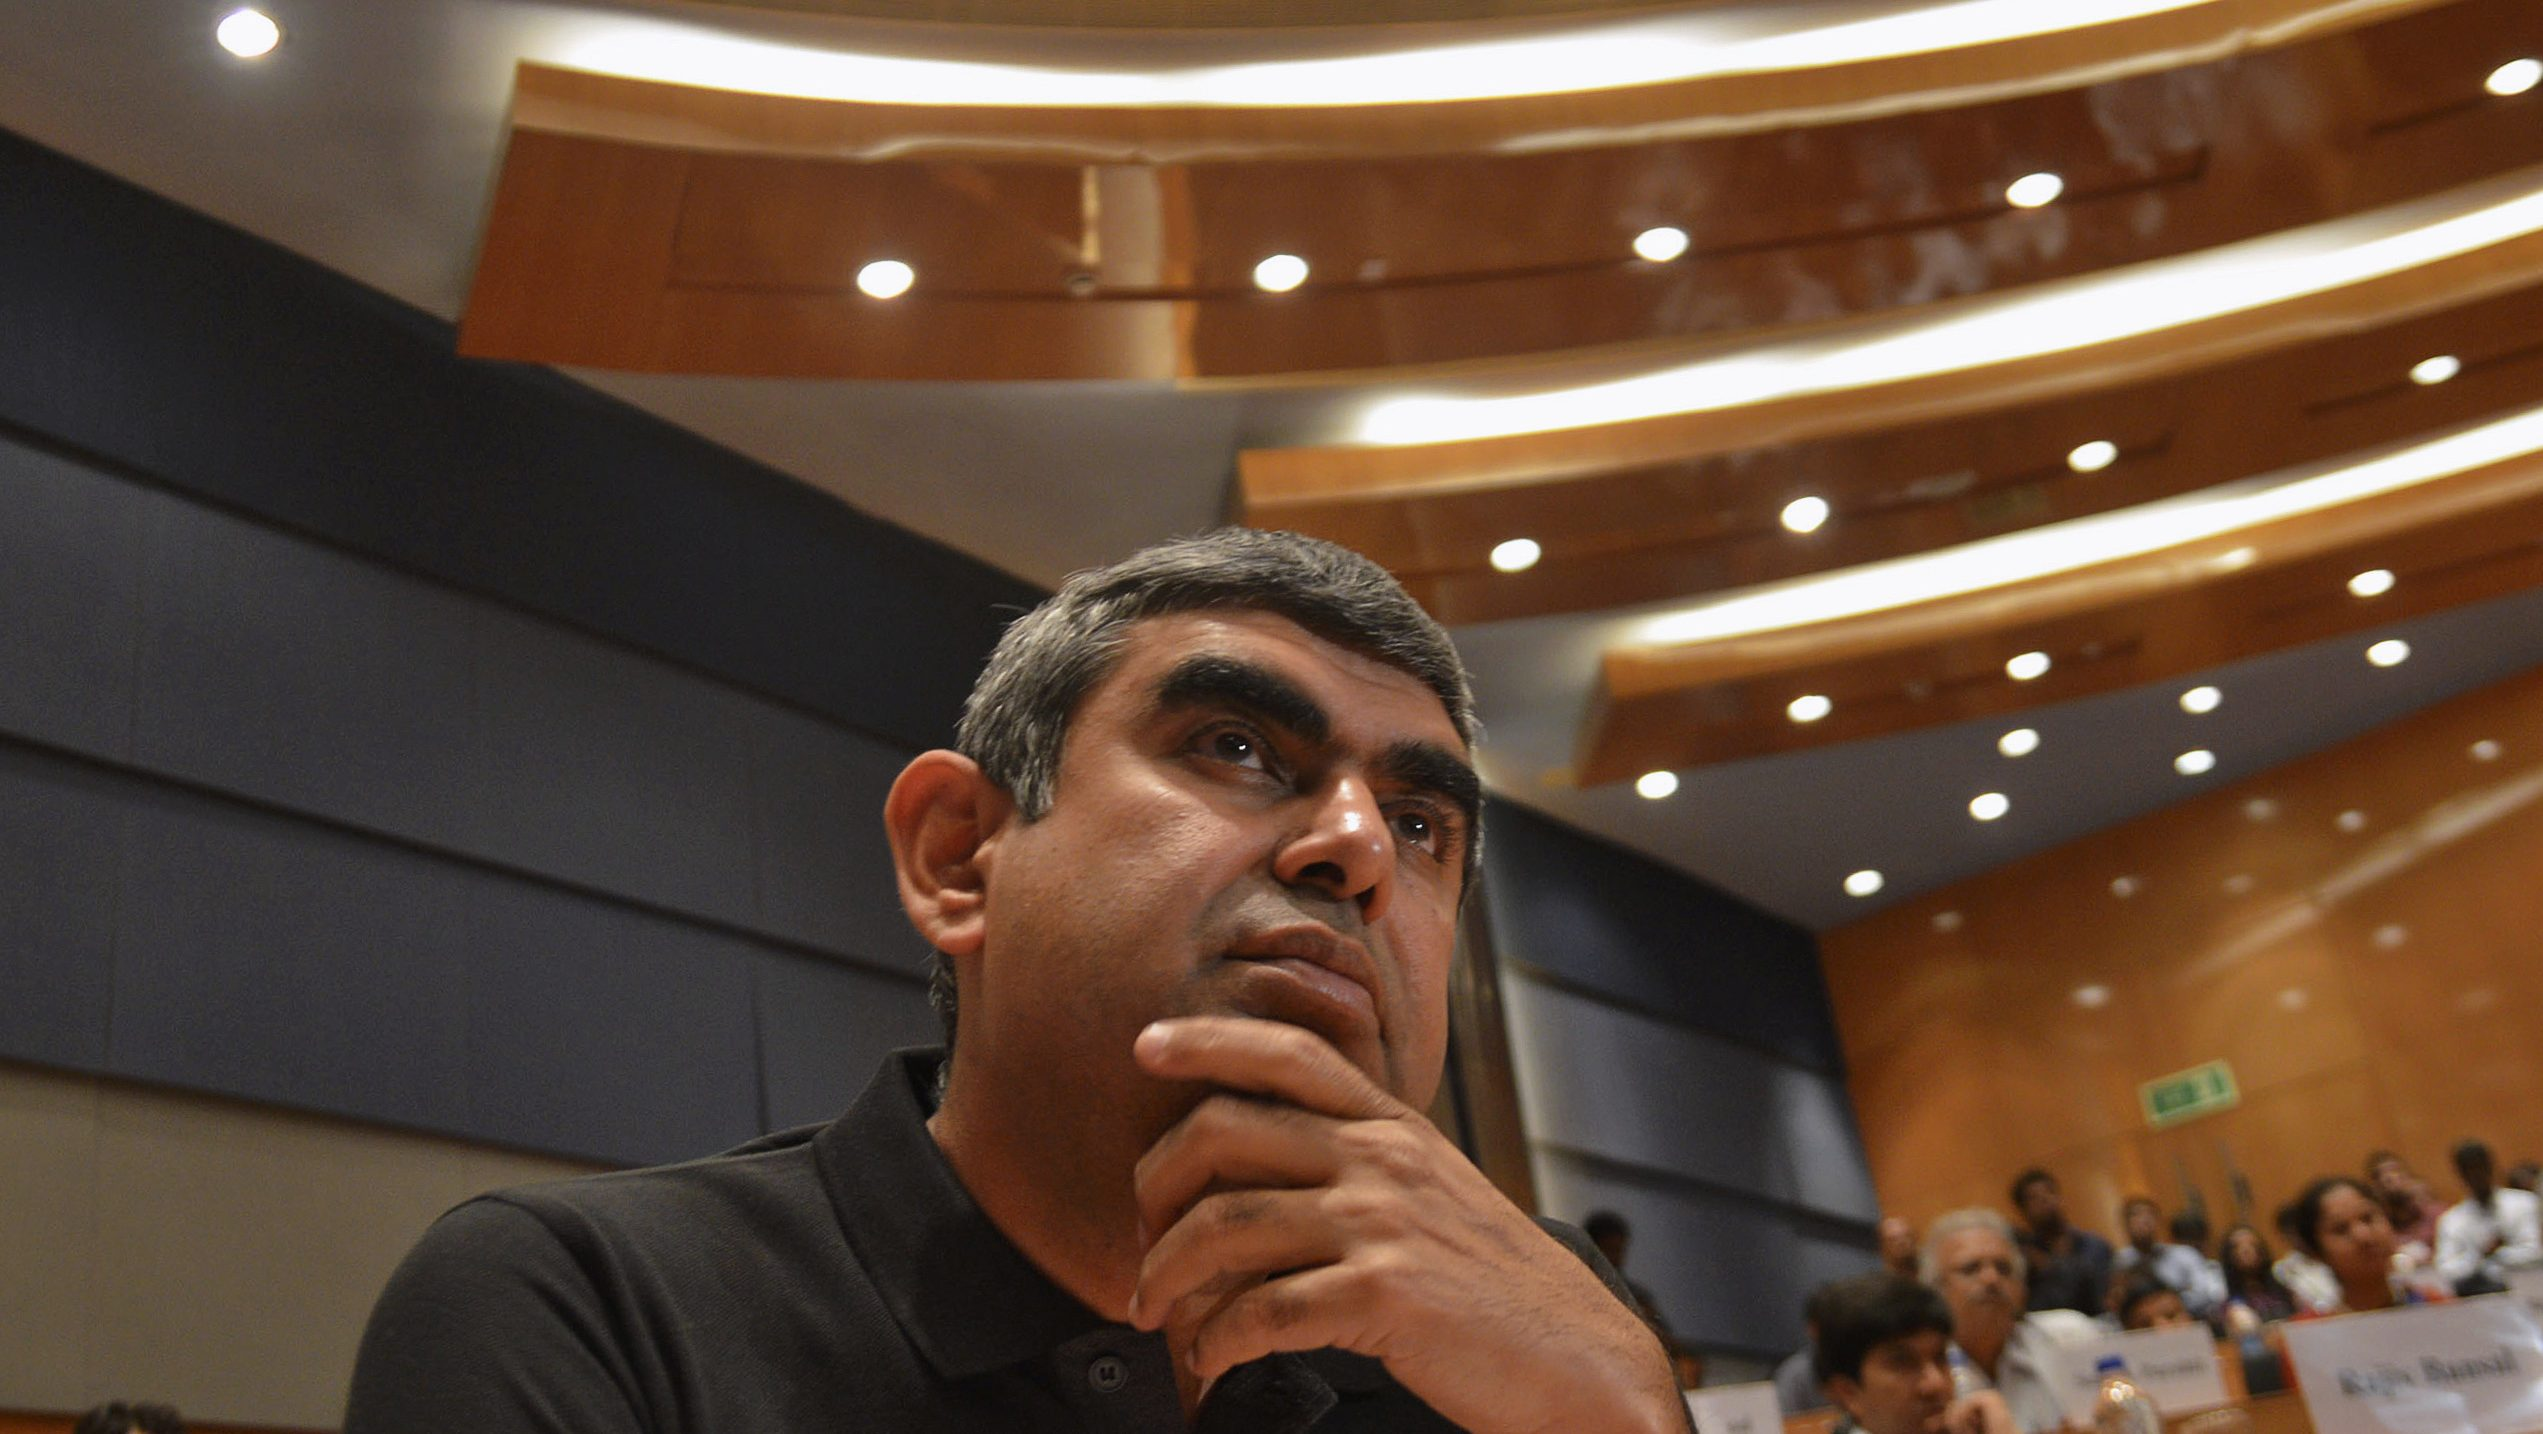 Infosys' newly appointed chief executive officer Vishal Sikka attends a news conference at company's headquarters in the southern Indian city of Bangalore June 12, 2014. Infosys Ltd, India's second-largest IT services exporter, has for the first time picked an outsider as chief executive officer, as it seeks to boost sales of high-margin services like cloud computing and stem a staff exodus. Sikka, a former member of executive board at German software company SAP AG, has the technical savvy to herald what analysts expect will be a strategy overhaul at Infosys, which, like its competitors Tata Consultancy Services Ltd and Wipro Ltd, has relied on labour-intensive, low-margin contracts from Western clients.